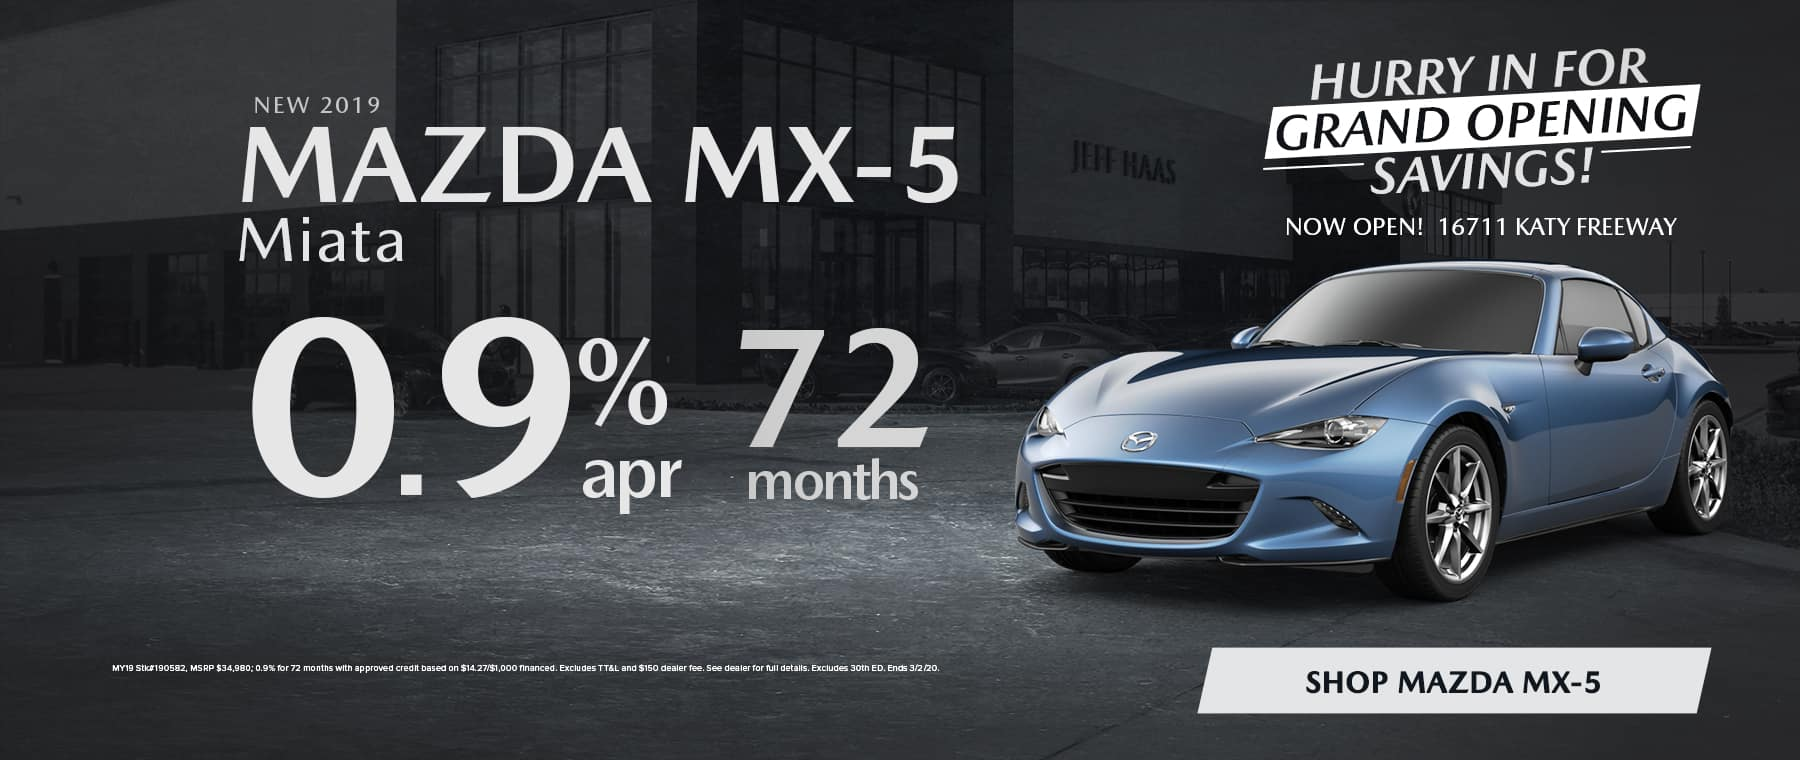 New 2019 MAZDA MX-5 Miata 0.9% APR for 72 Months